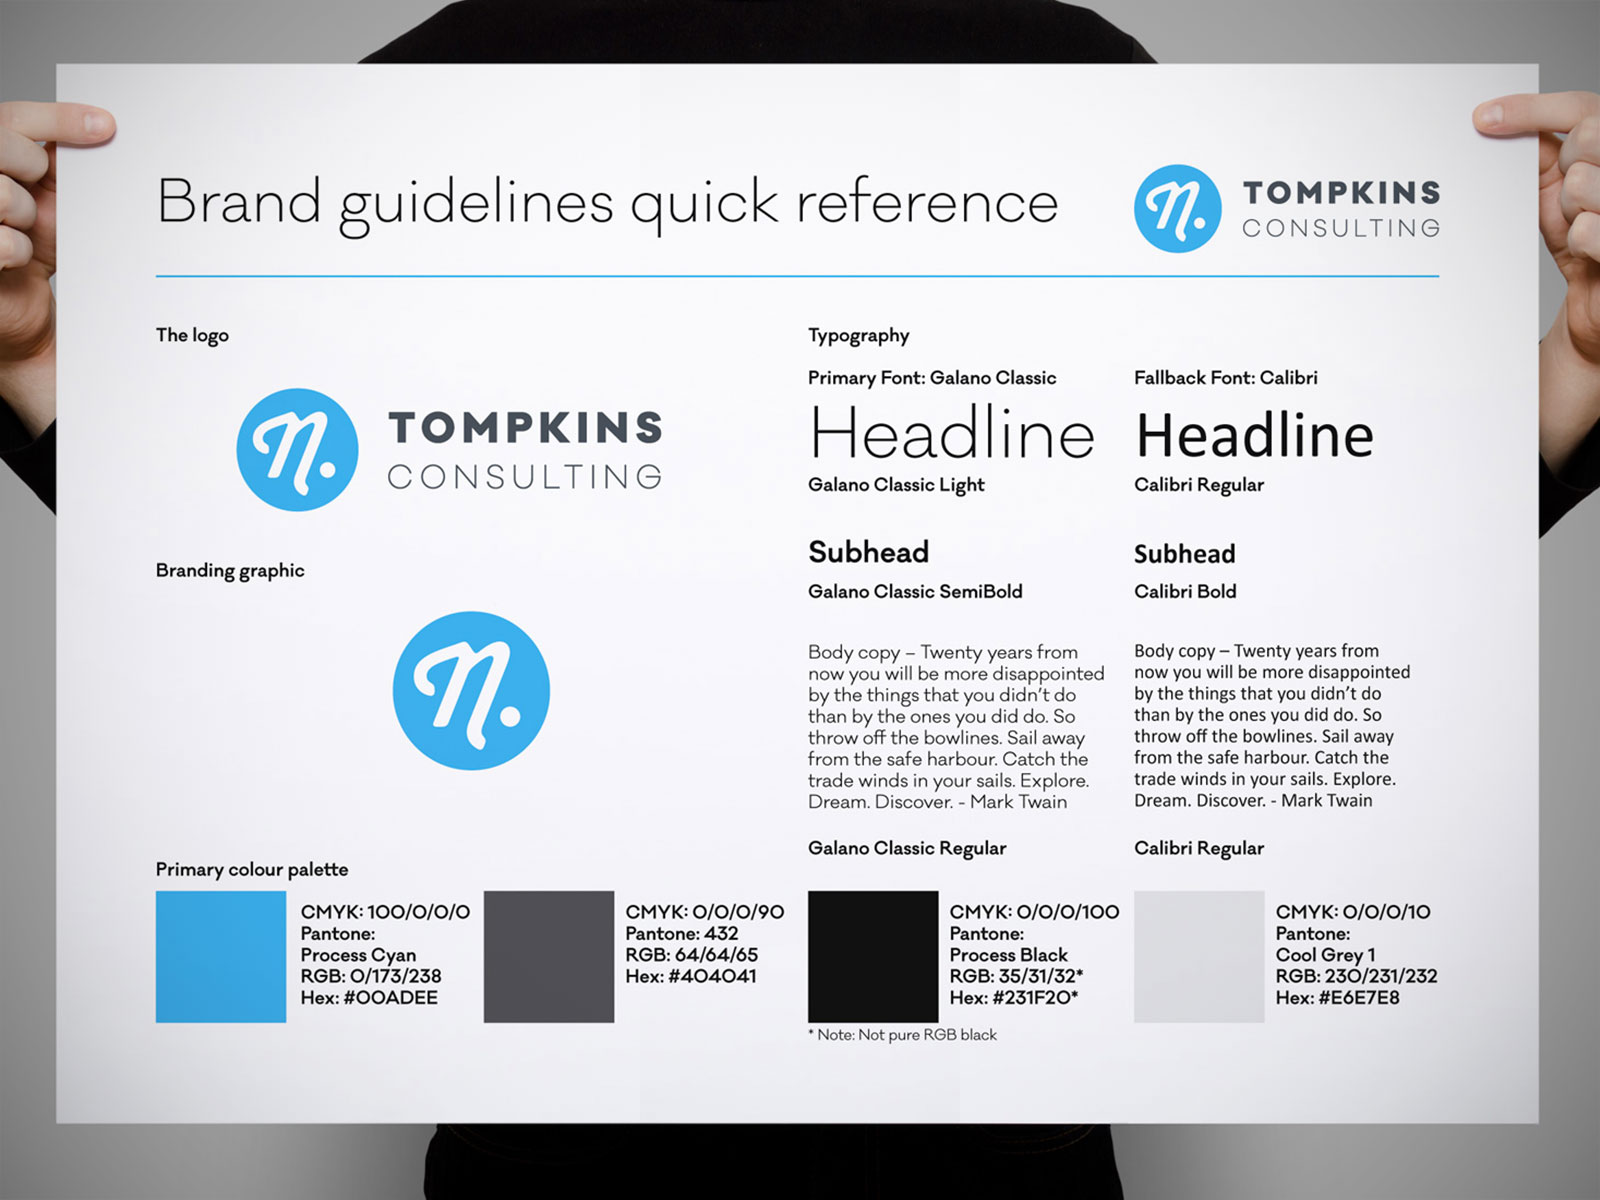 N. Tompkins Consulting - brand identity